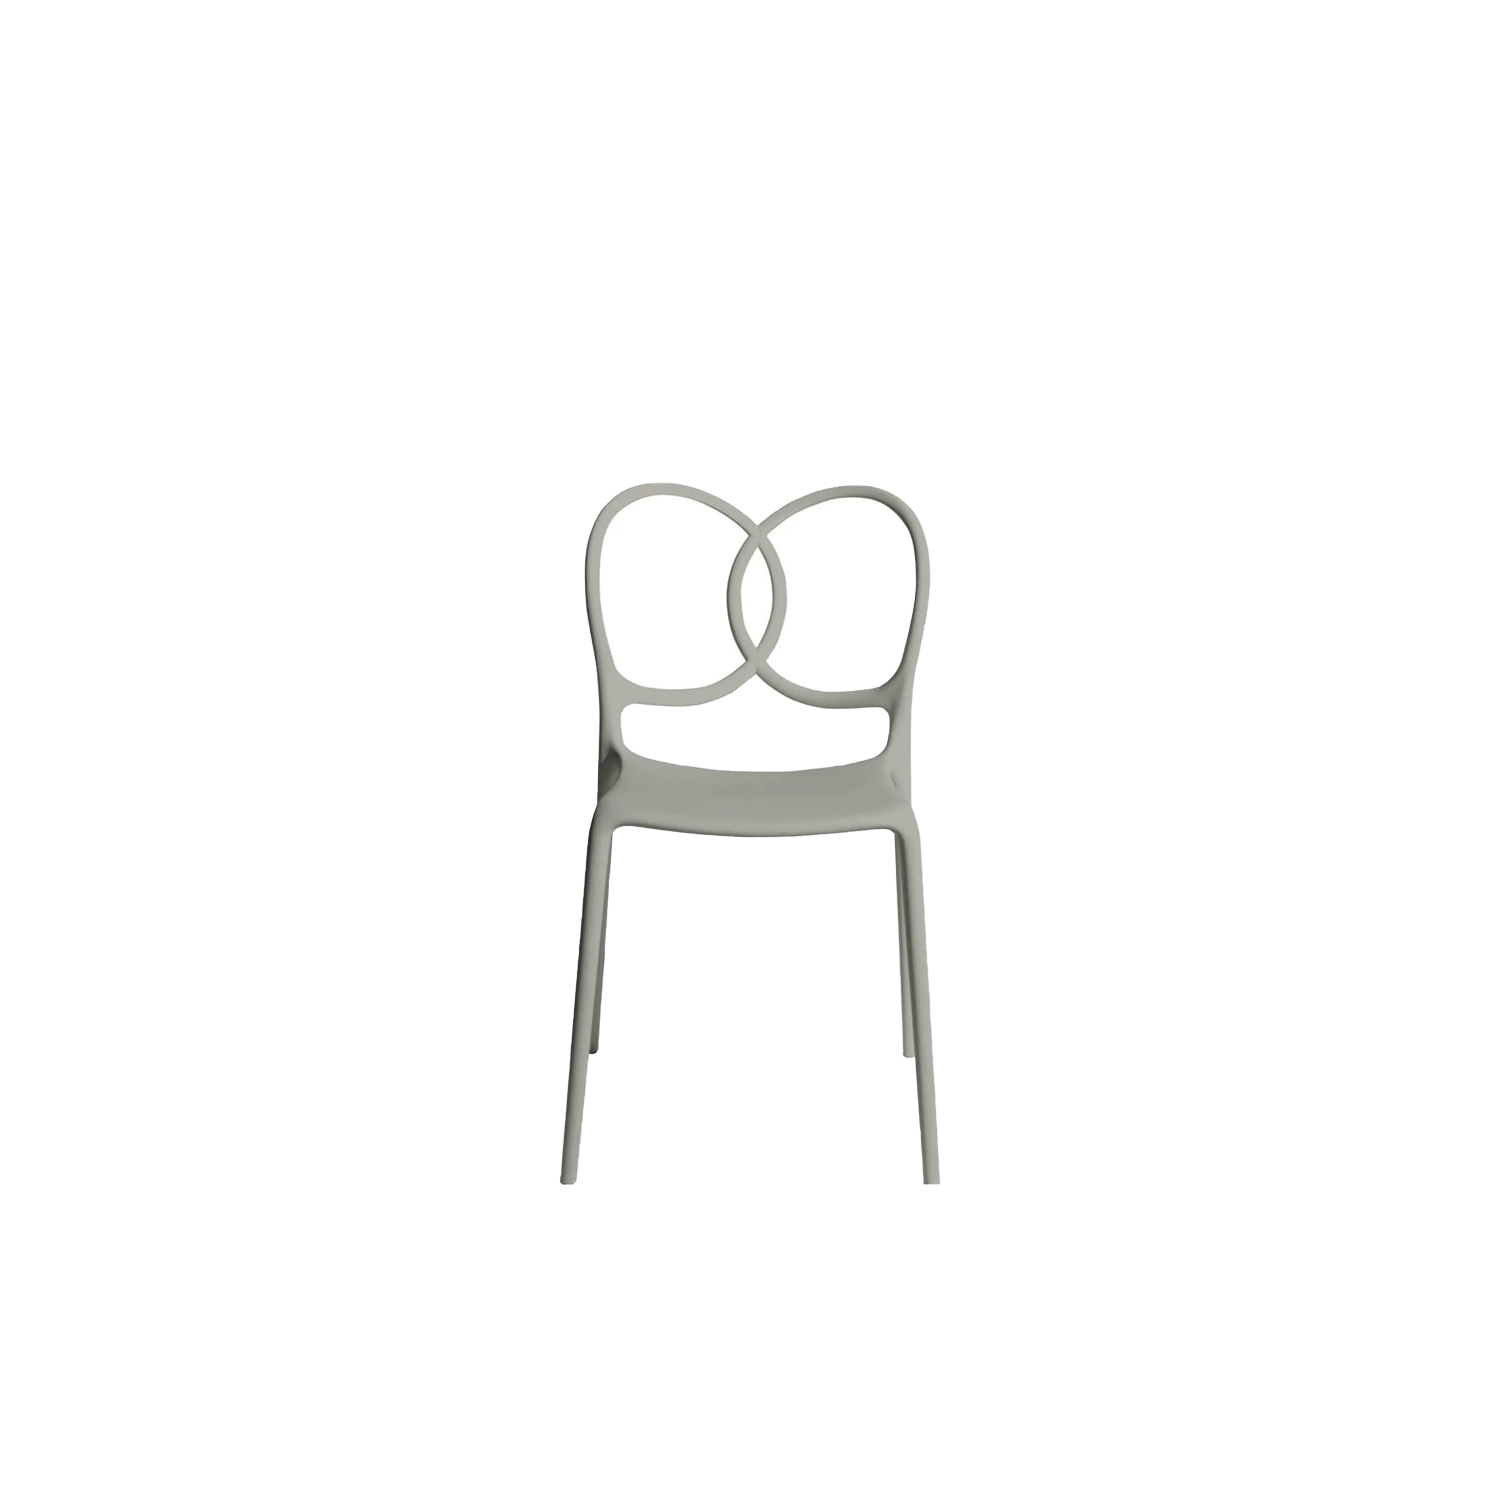 """Sissi Chair - Sissi is a sculptural, very versatile, self- centred and contemporary piece. """"Its modern design winks cheekily at the past and at the female world. The merging and intersecting rings look as if they have been bent by the hand of the viennese craftsmen, whom since over a century ago, would offer the world an elegant and design archetype. The connections, linked in such a sensual way, turn sissi into a refined and sculptural piece, just like the ultimate viennese chair - famous for its wooden curves- it is inspired by. Just like a confident, self-assured women changes her clothes to suit her mood, this chair is complemented by an essential part of its design, the seat cover.""""Ludovica and Roberto Palomba.   